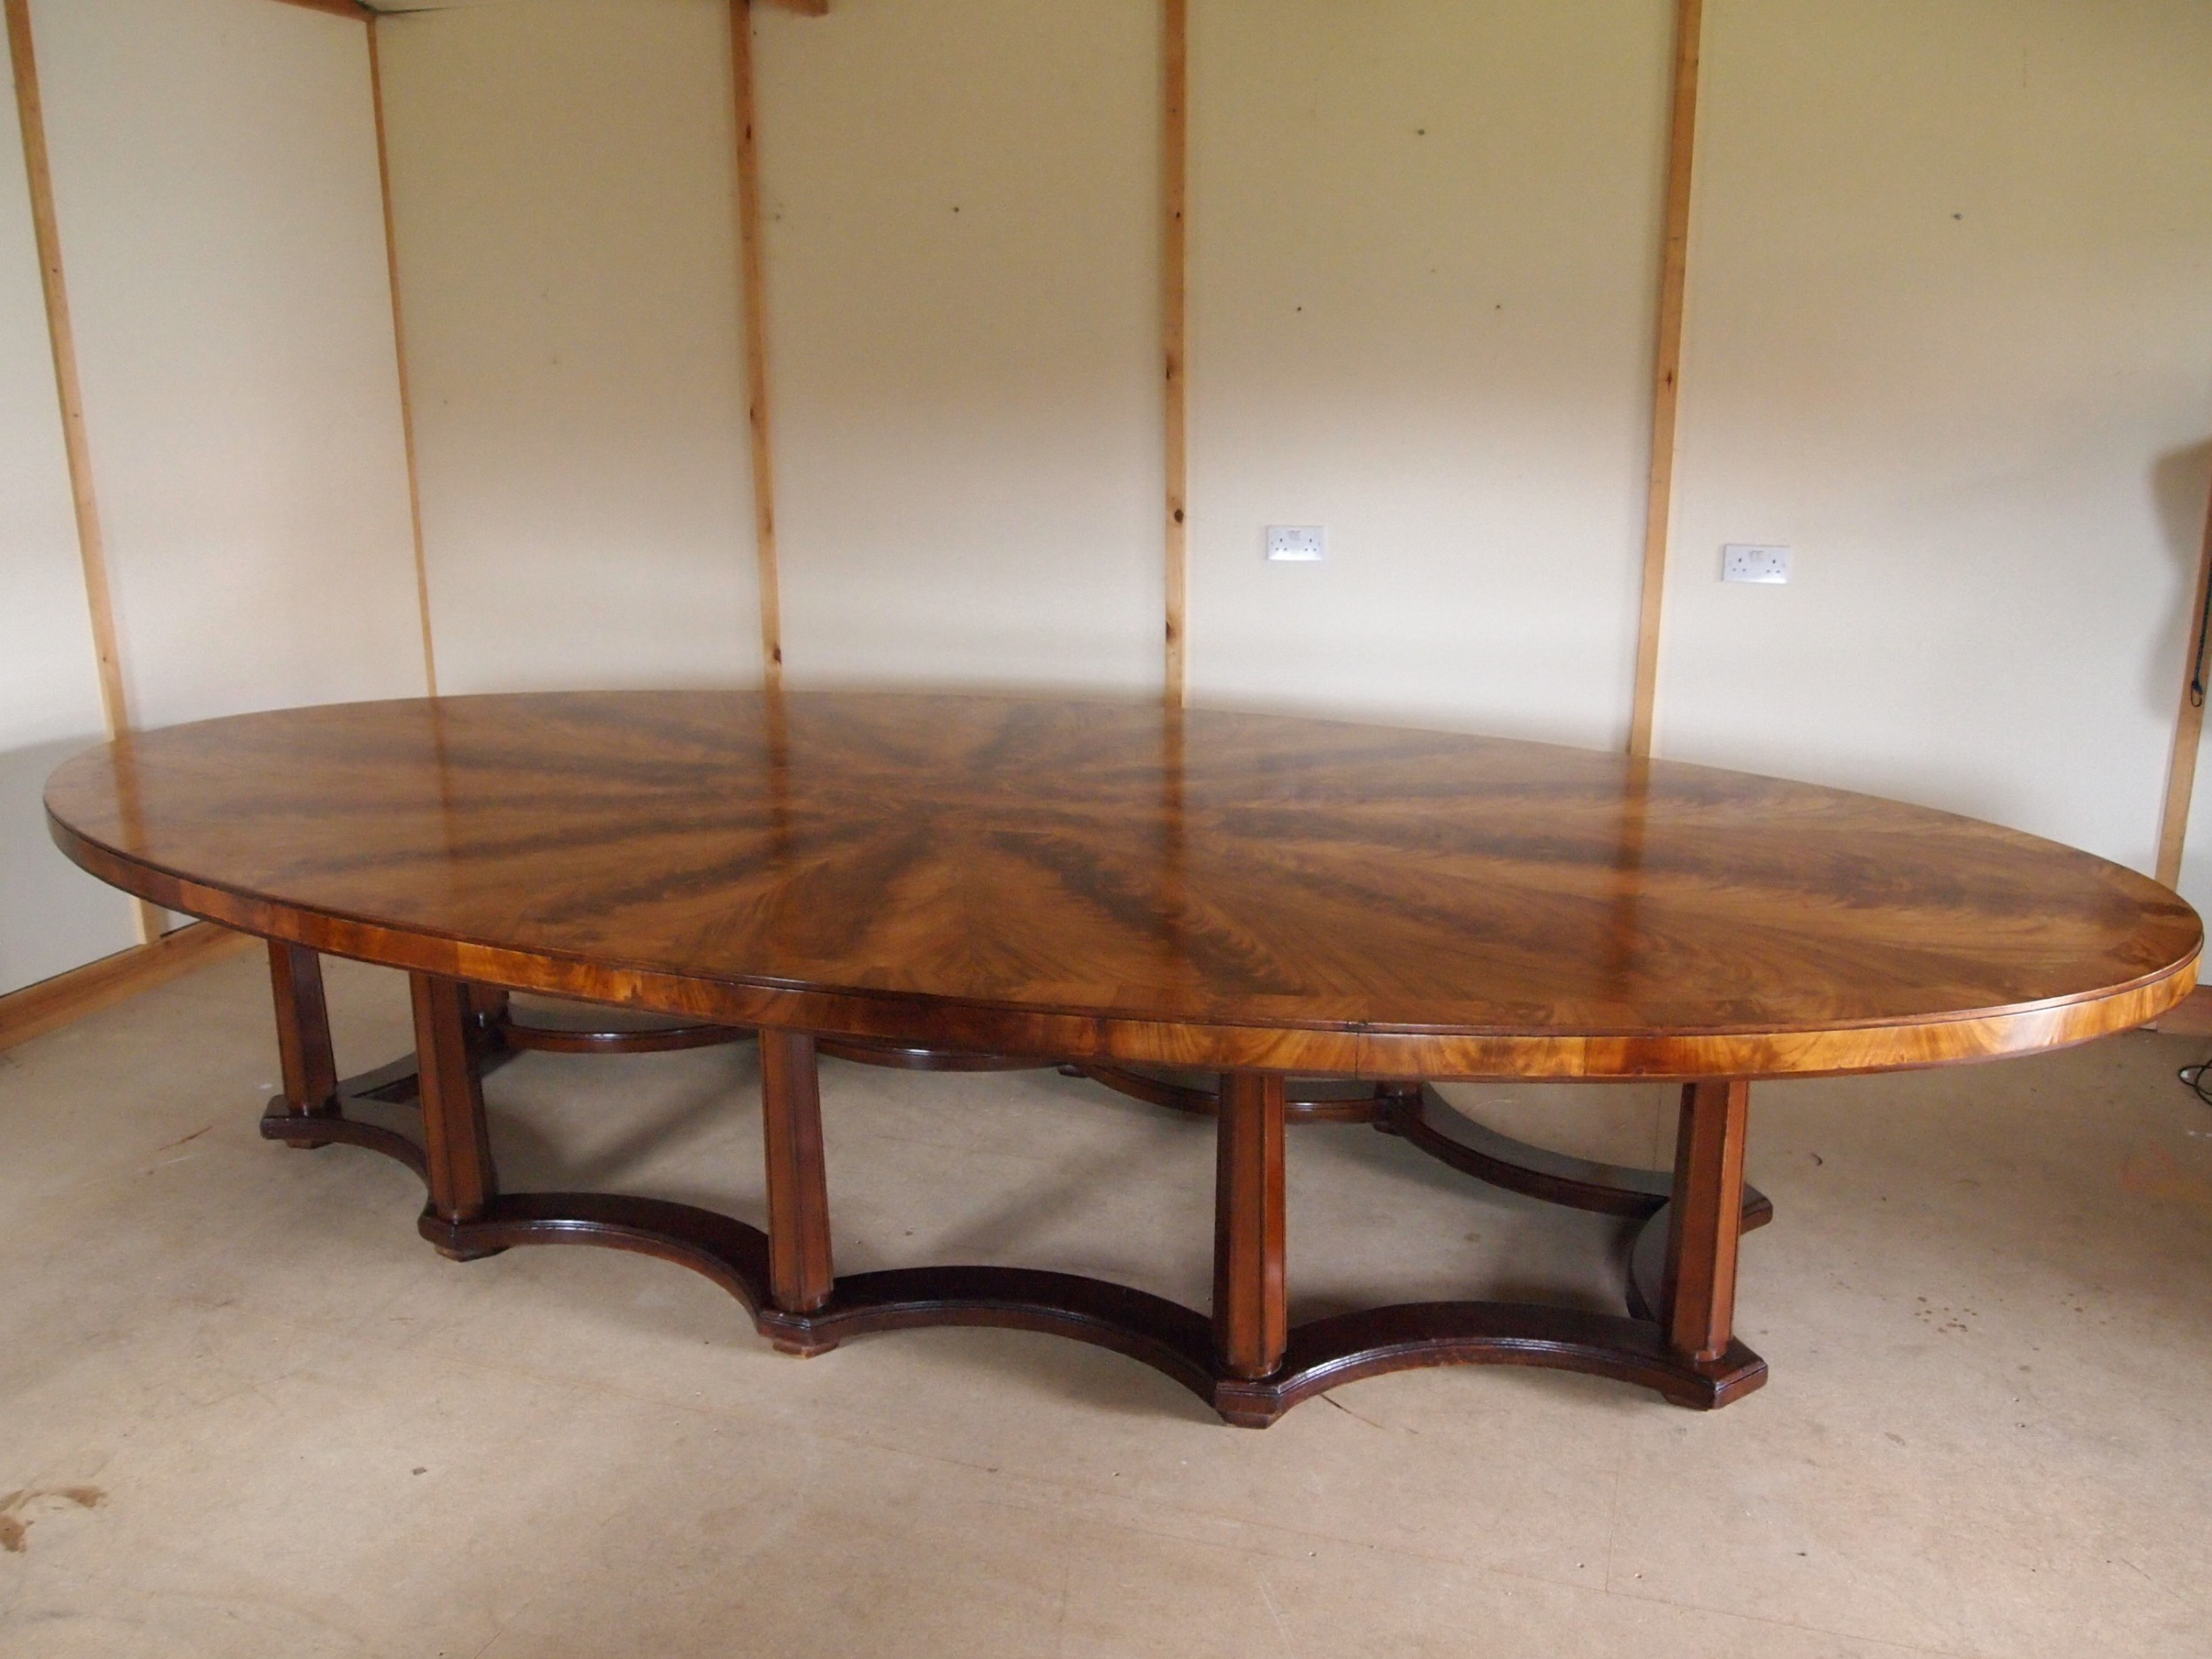 table dining boardroom large edwardian seats 20 norwich union c1900